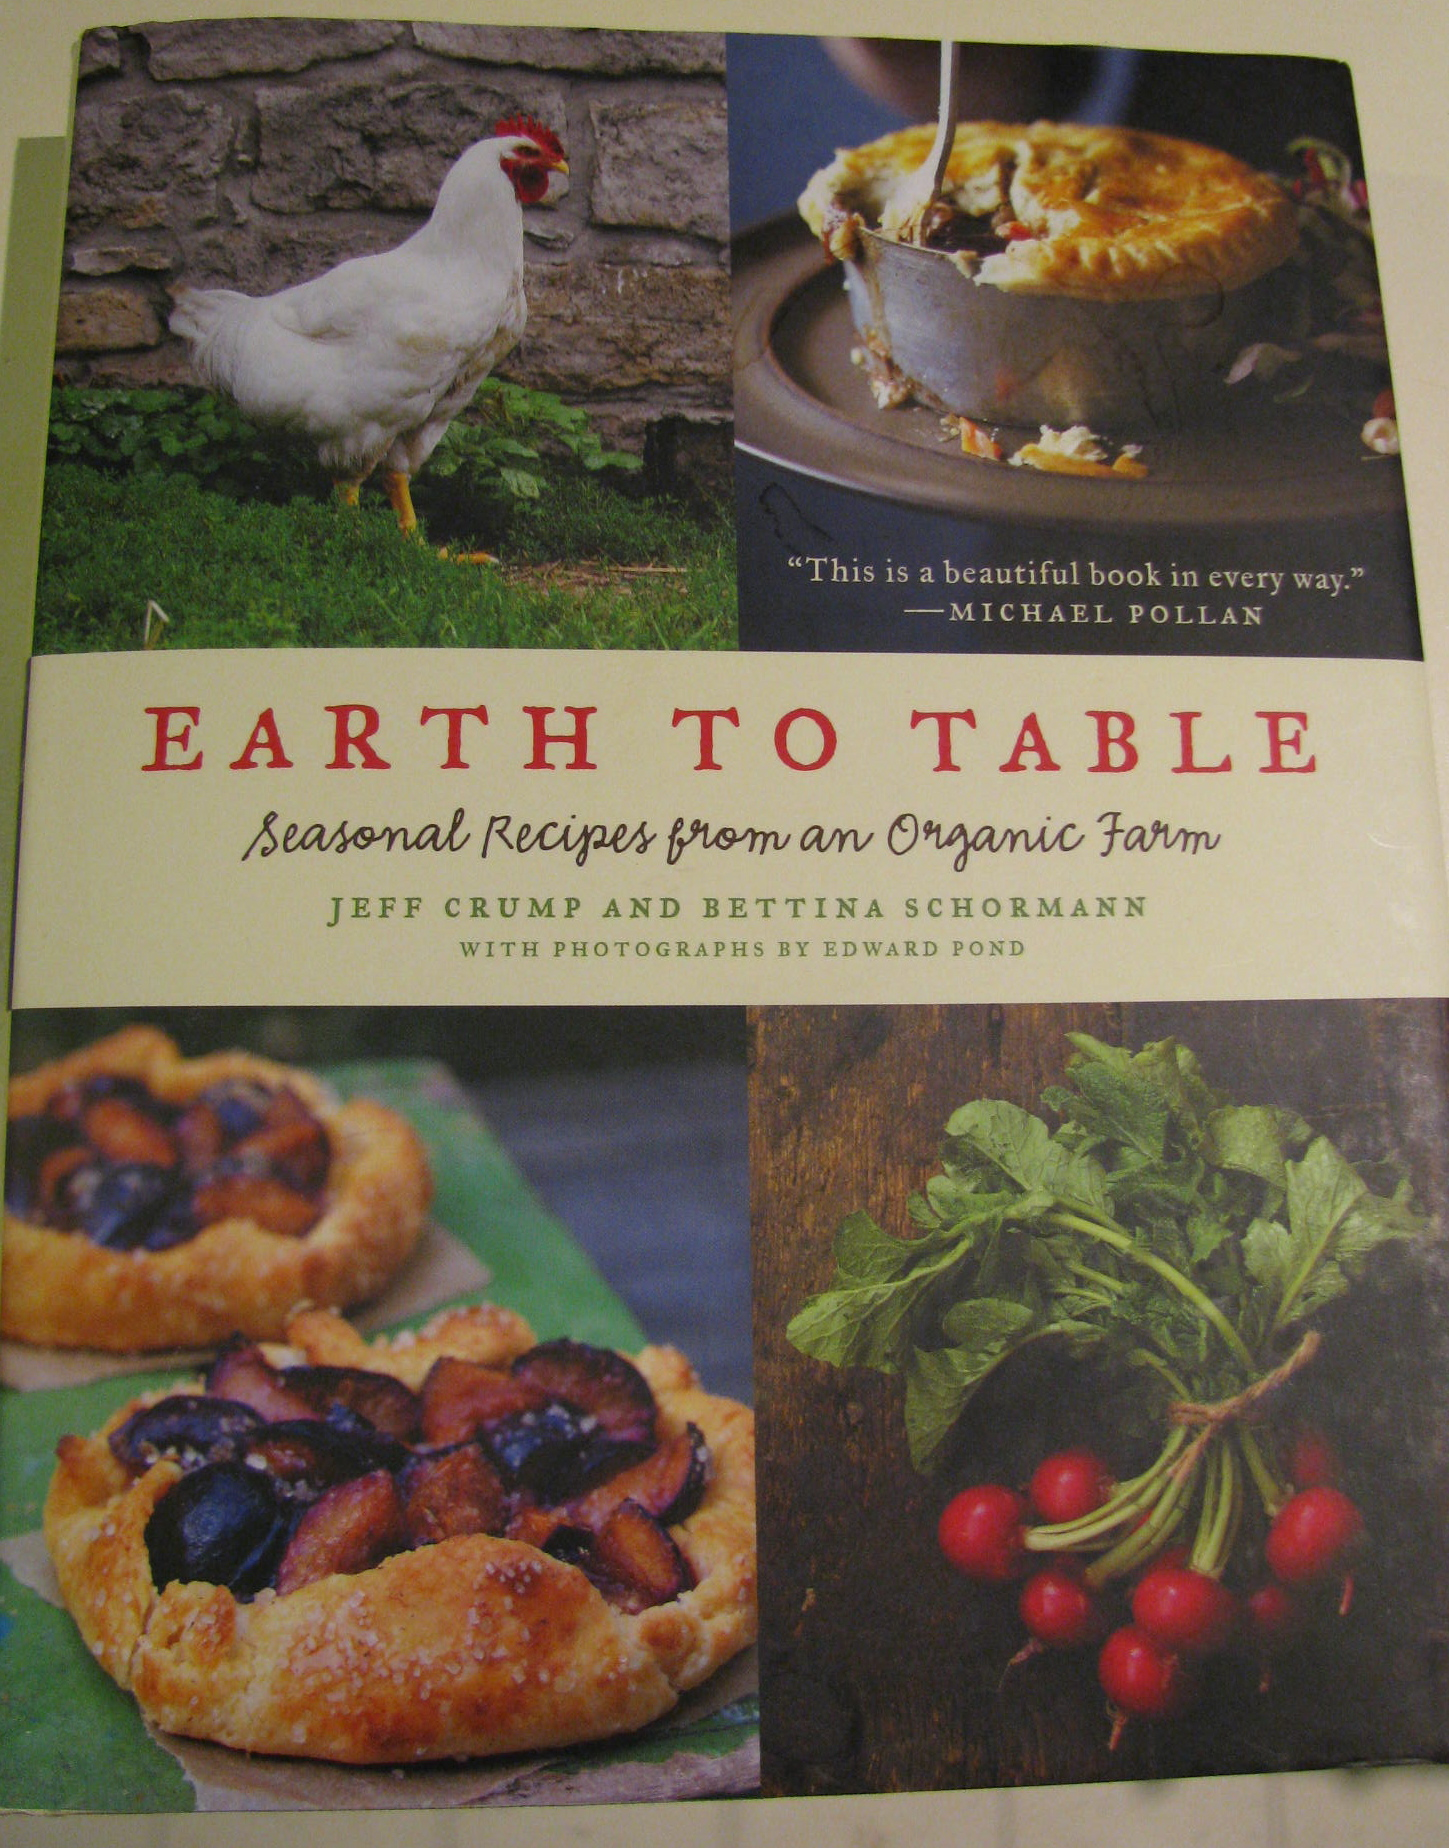 Earth to table columbus food adventures yesterday i wrote about returning to an old favorite cookbook today i want to write about a new one i was given earth to table seasonal recipes from an forumfinder Choice Image